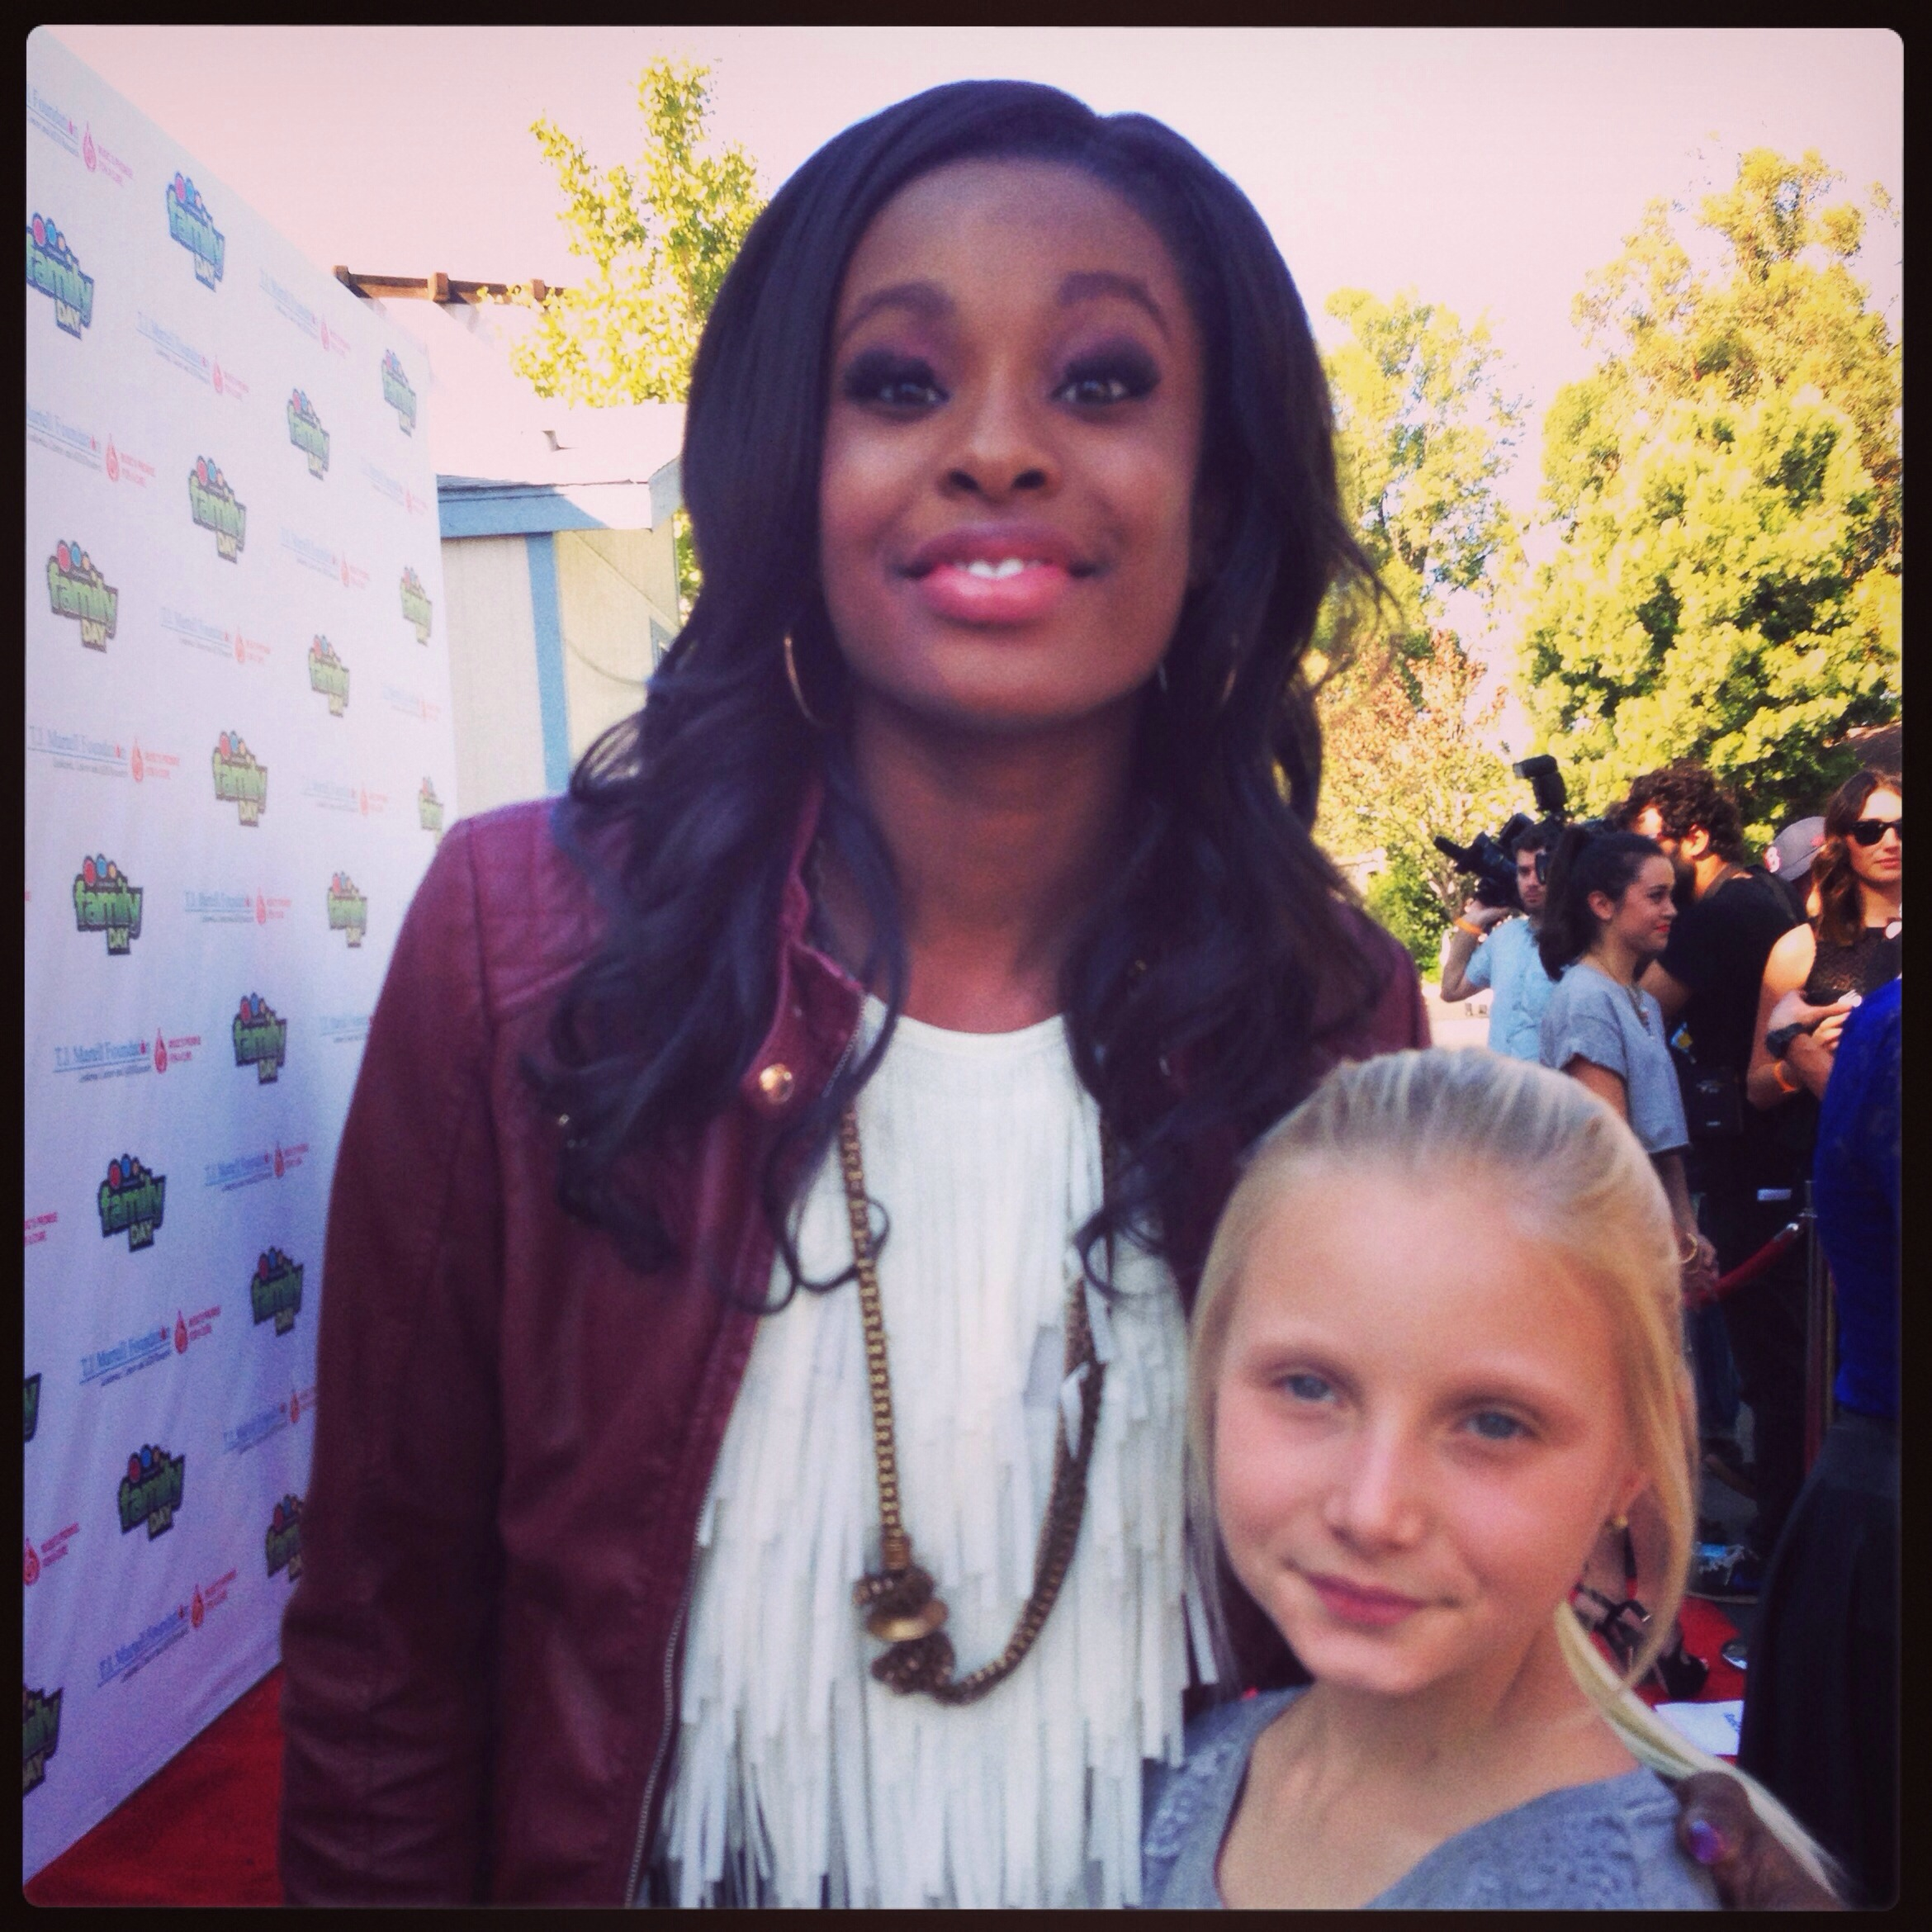 Free concert and meet and greet with Coco Jones November 28